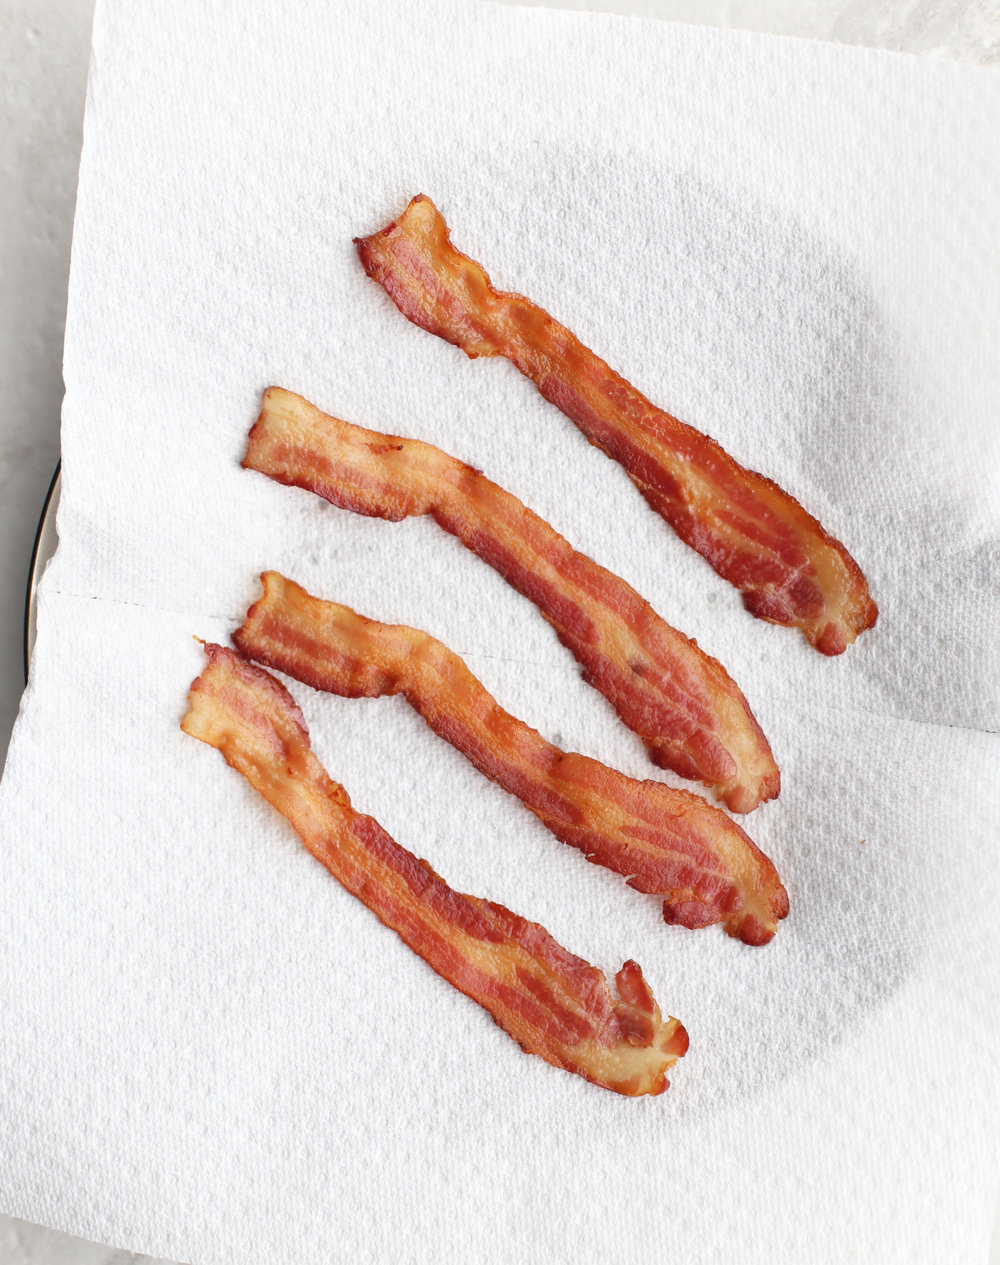 Four crispy strips of bacon on a white paper towel.